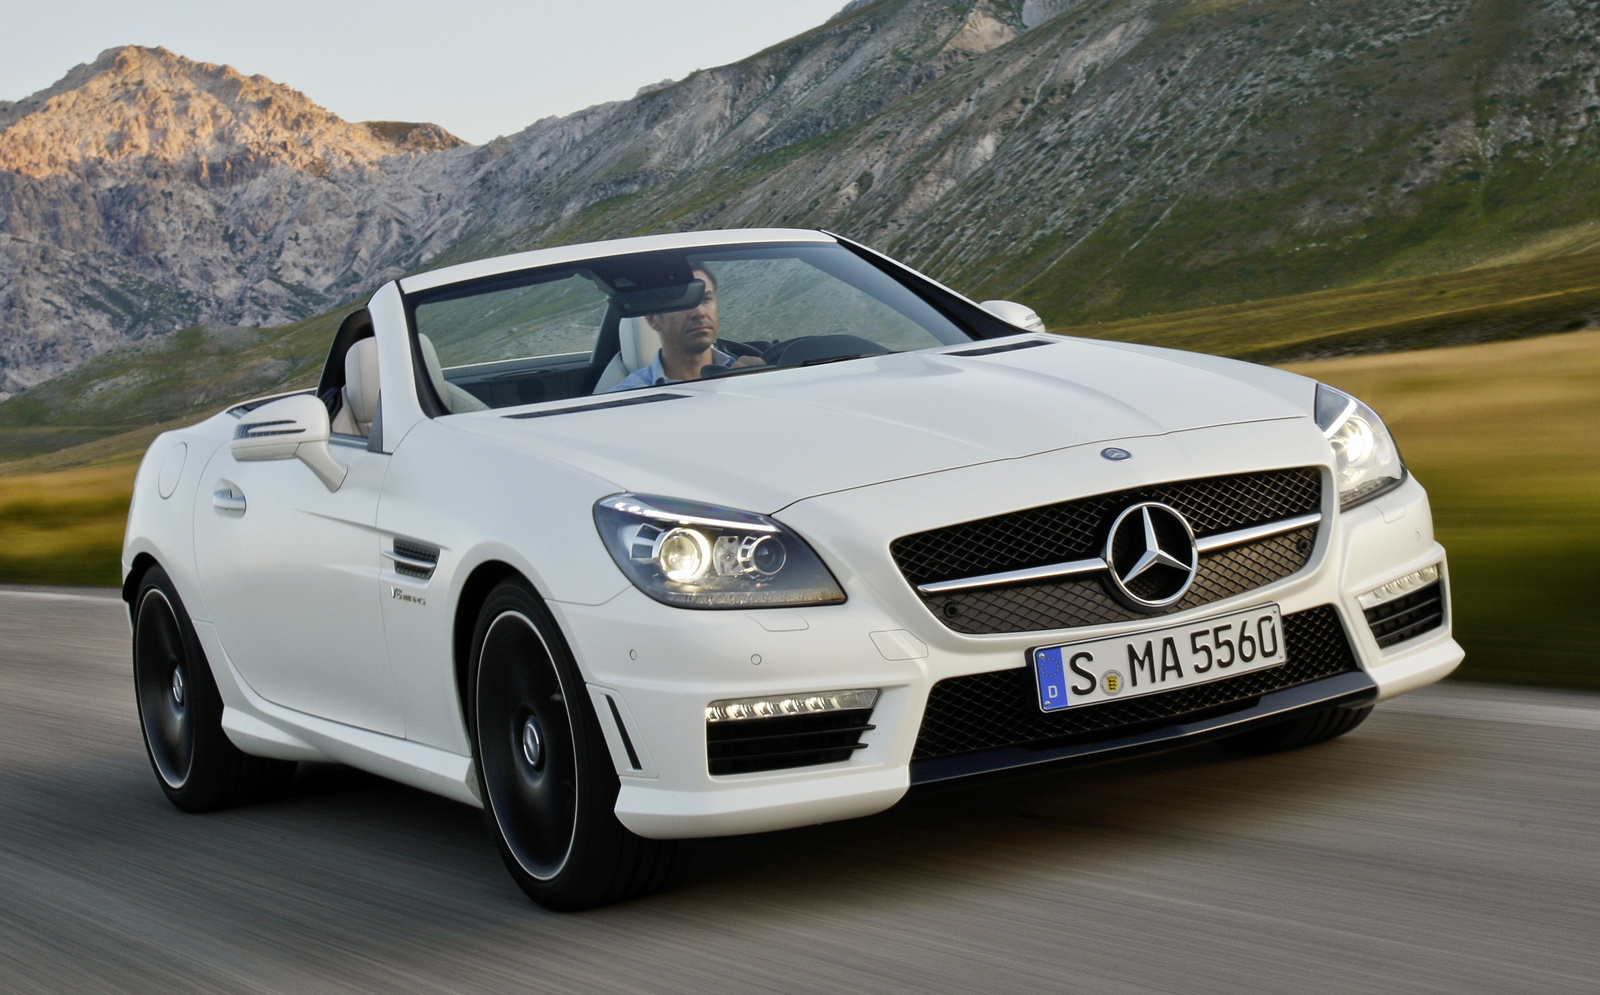 2014 mercedes benz slk class pictures cargurus for Mercedes benz 2014